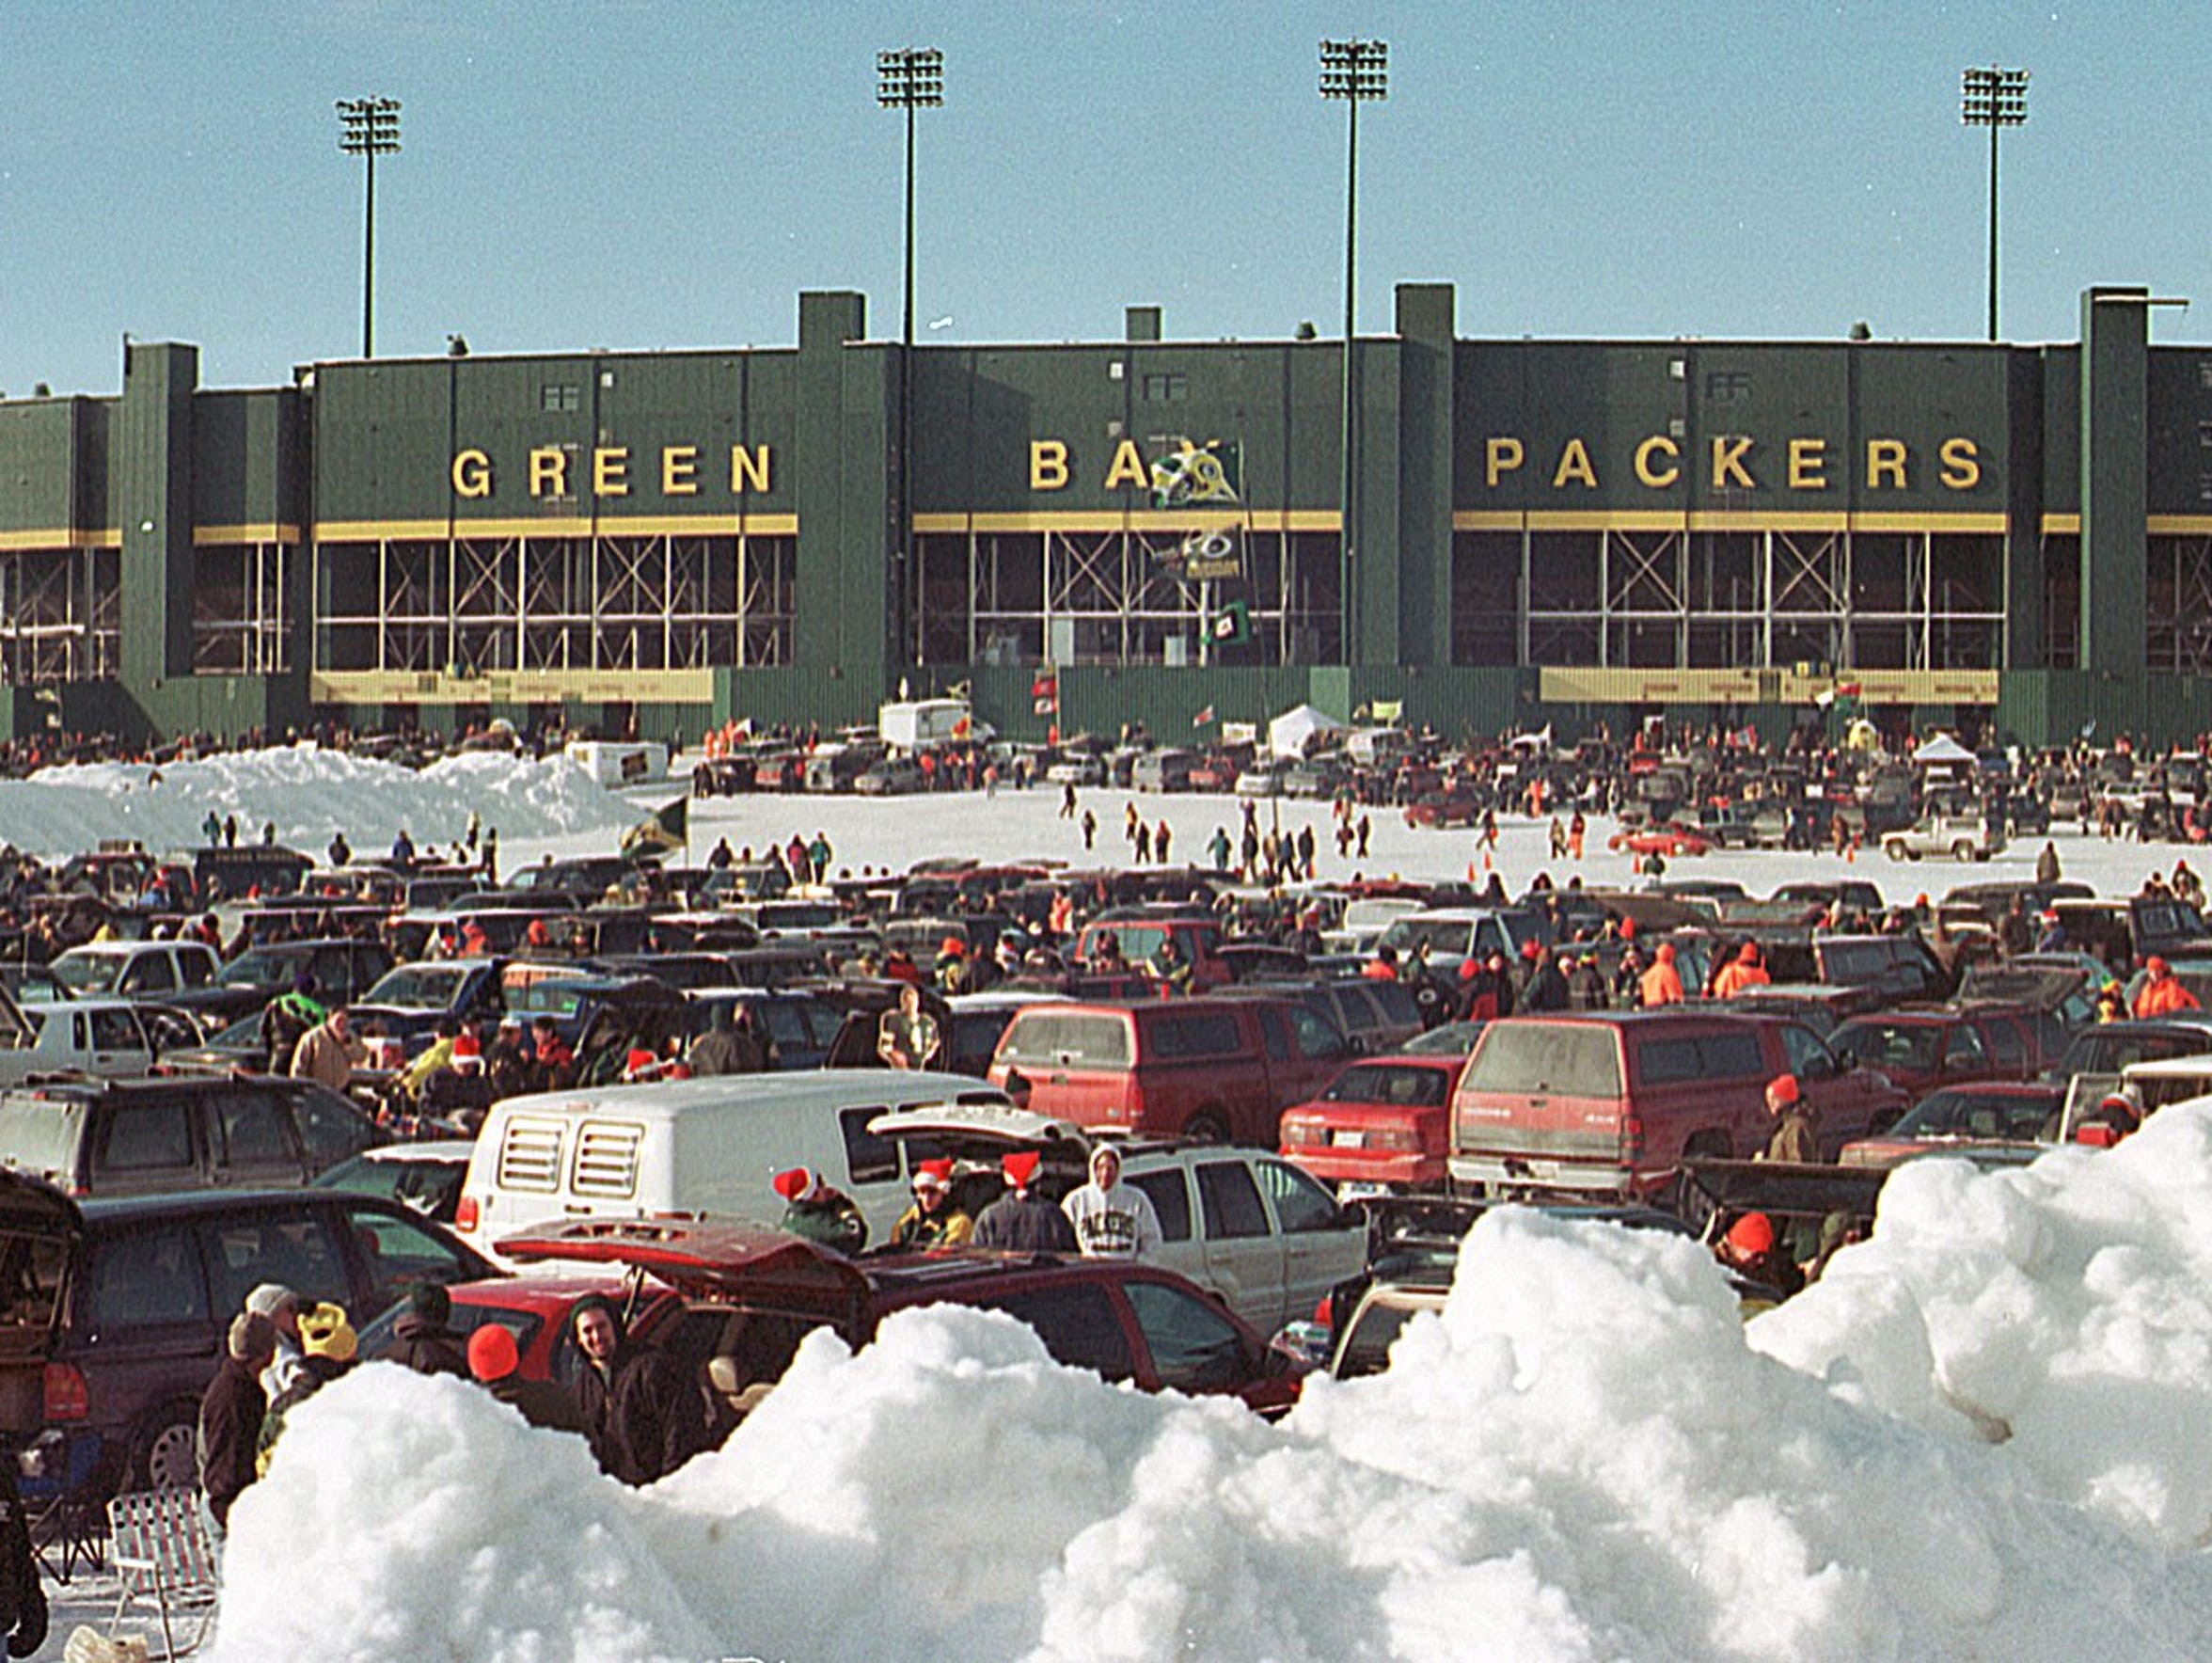 Tailgaters celebrate before the Packers take on the